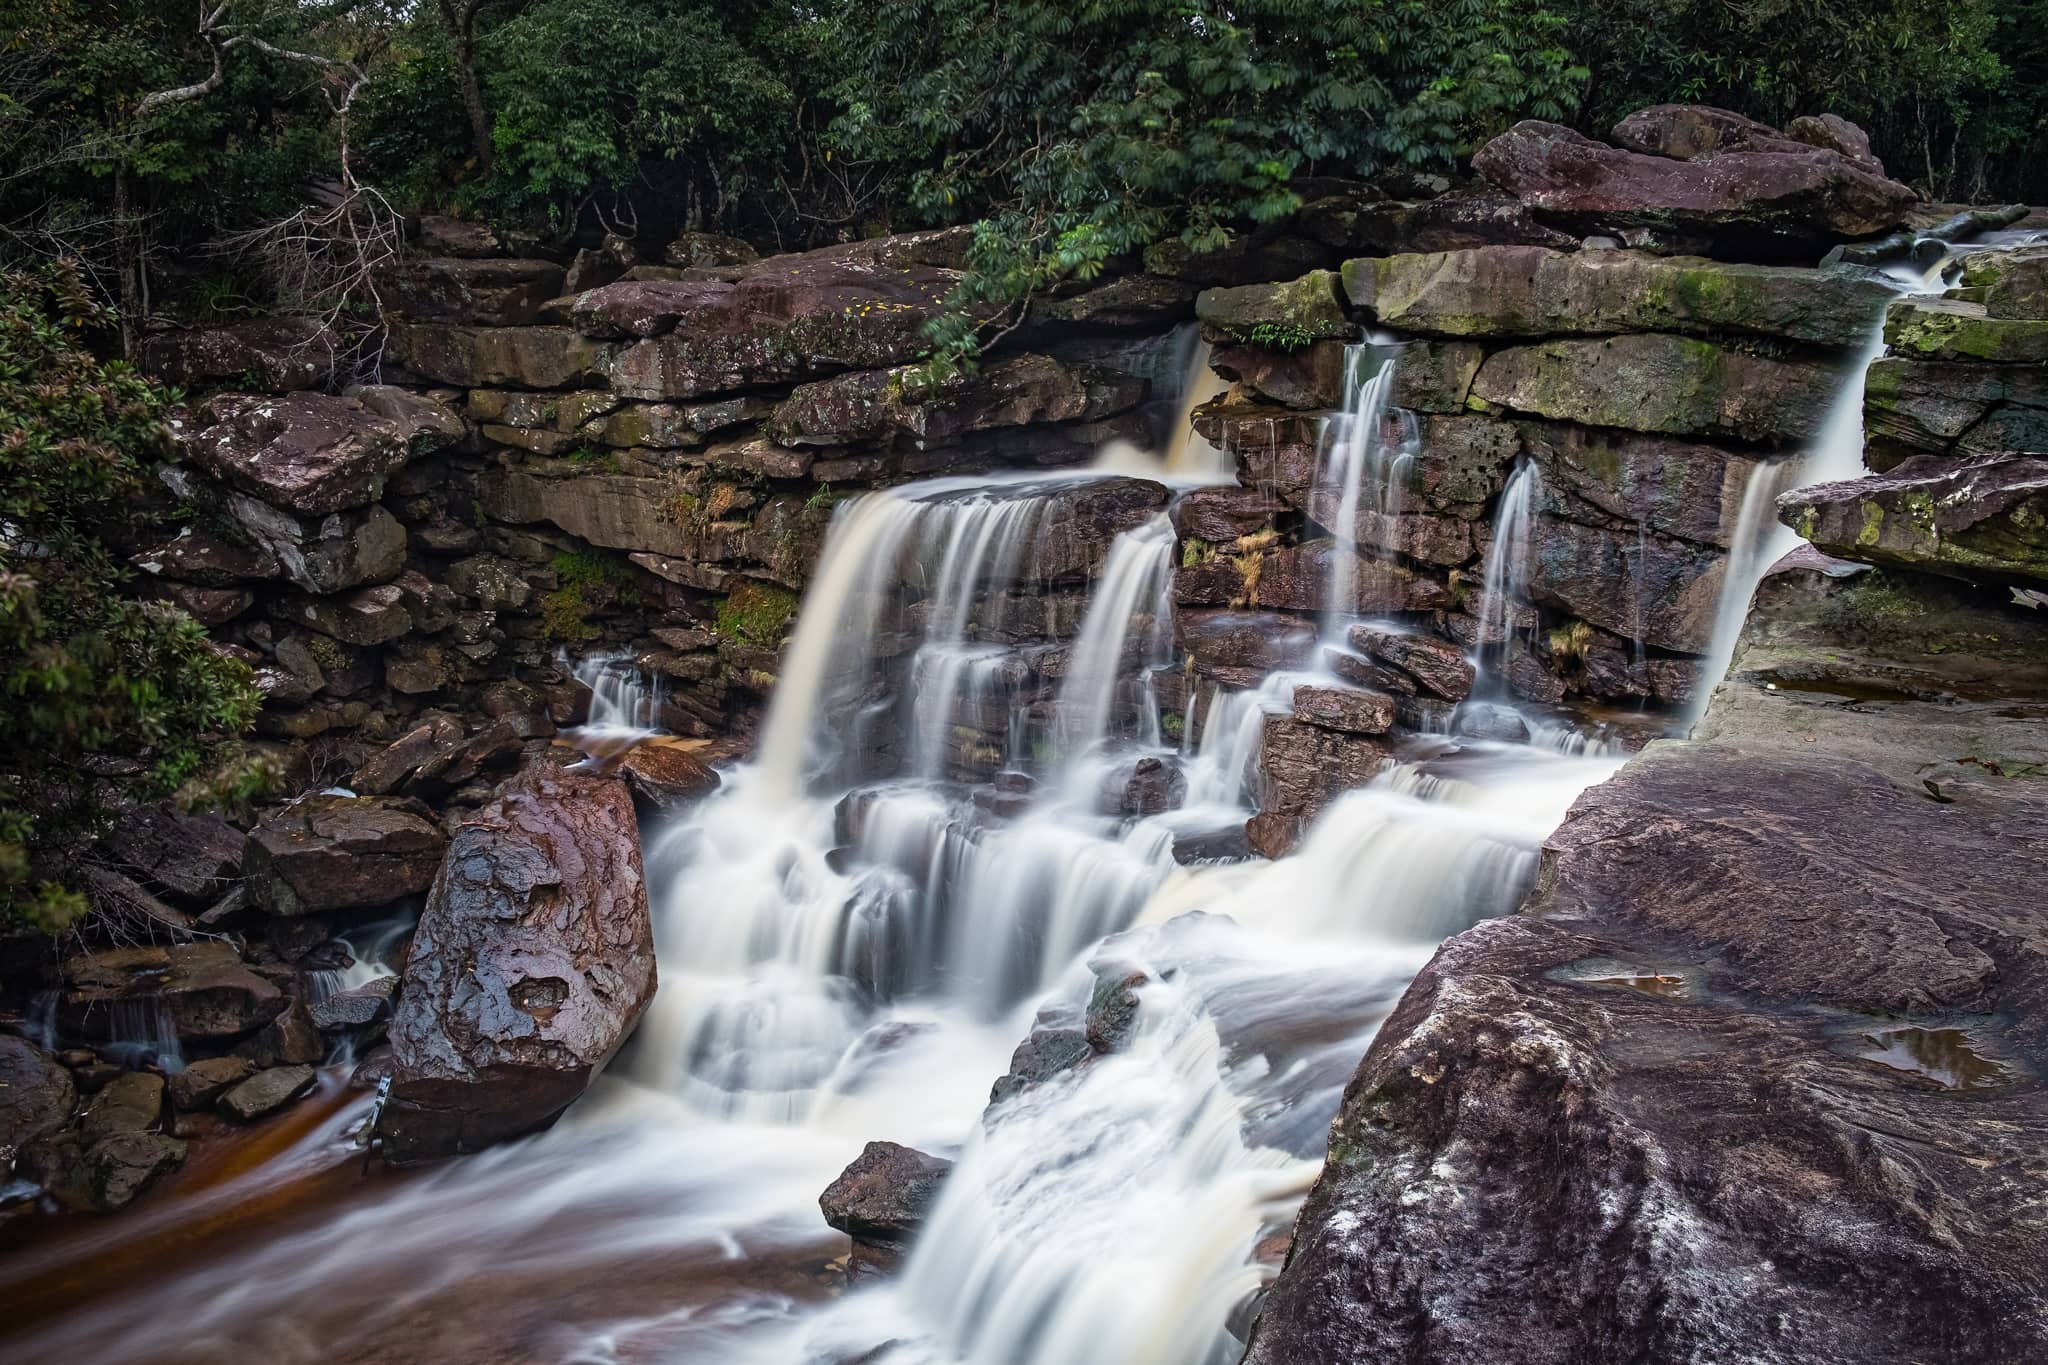 Long exposure of Popokvil Waterfall with smooth and silky water at Bokor National Park. Kampot Cambodia.